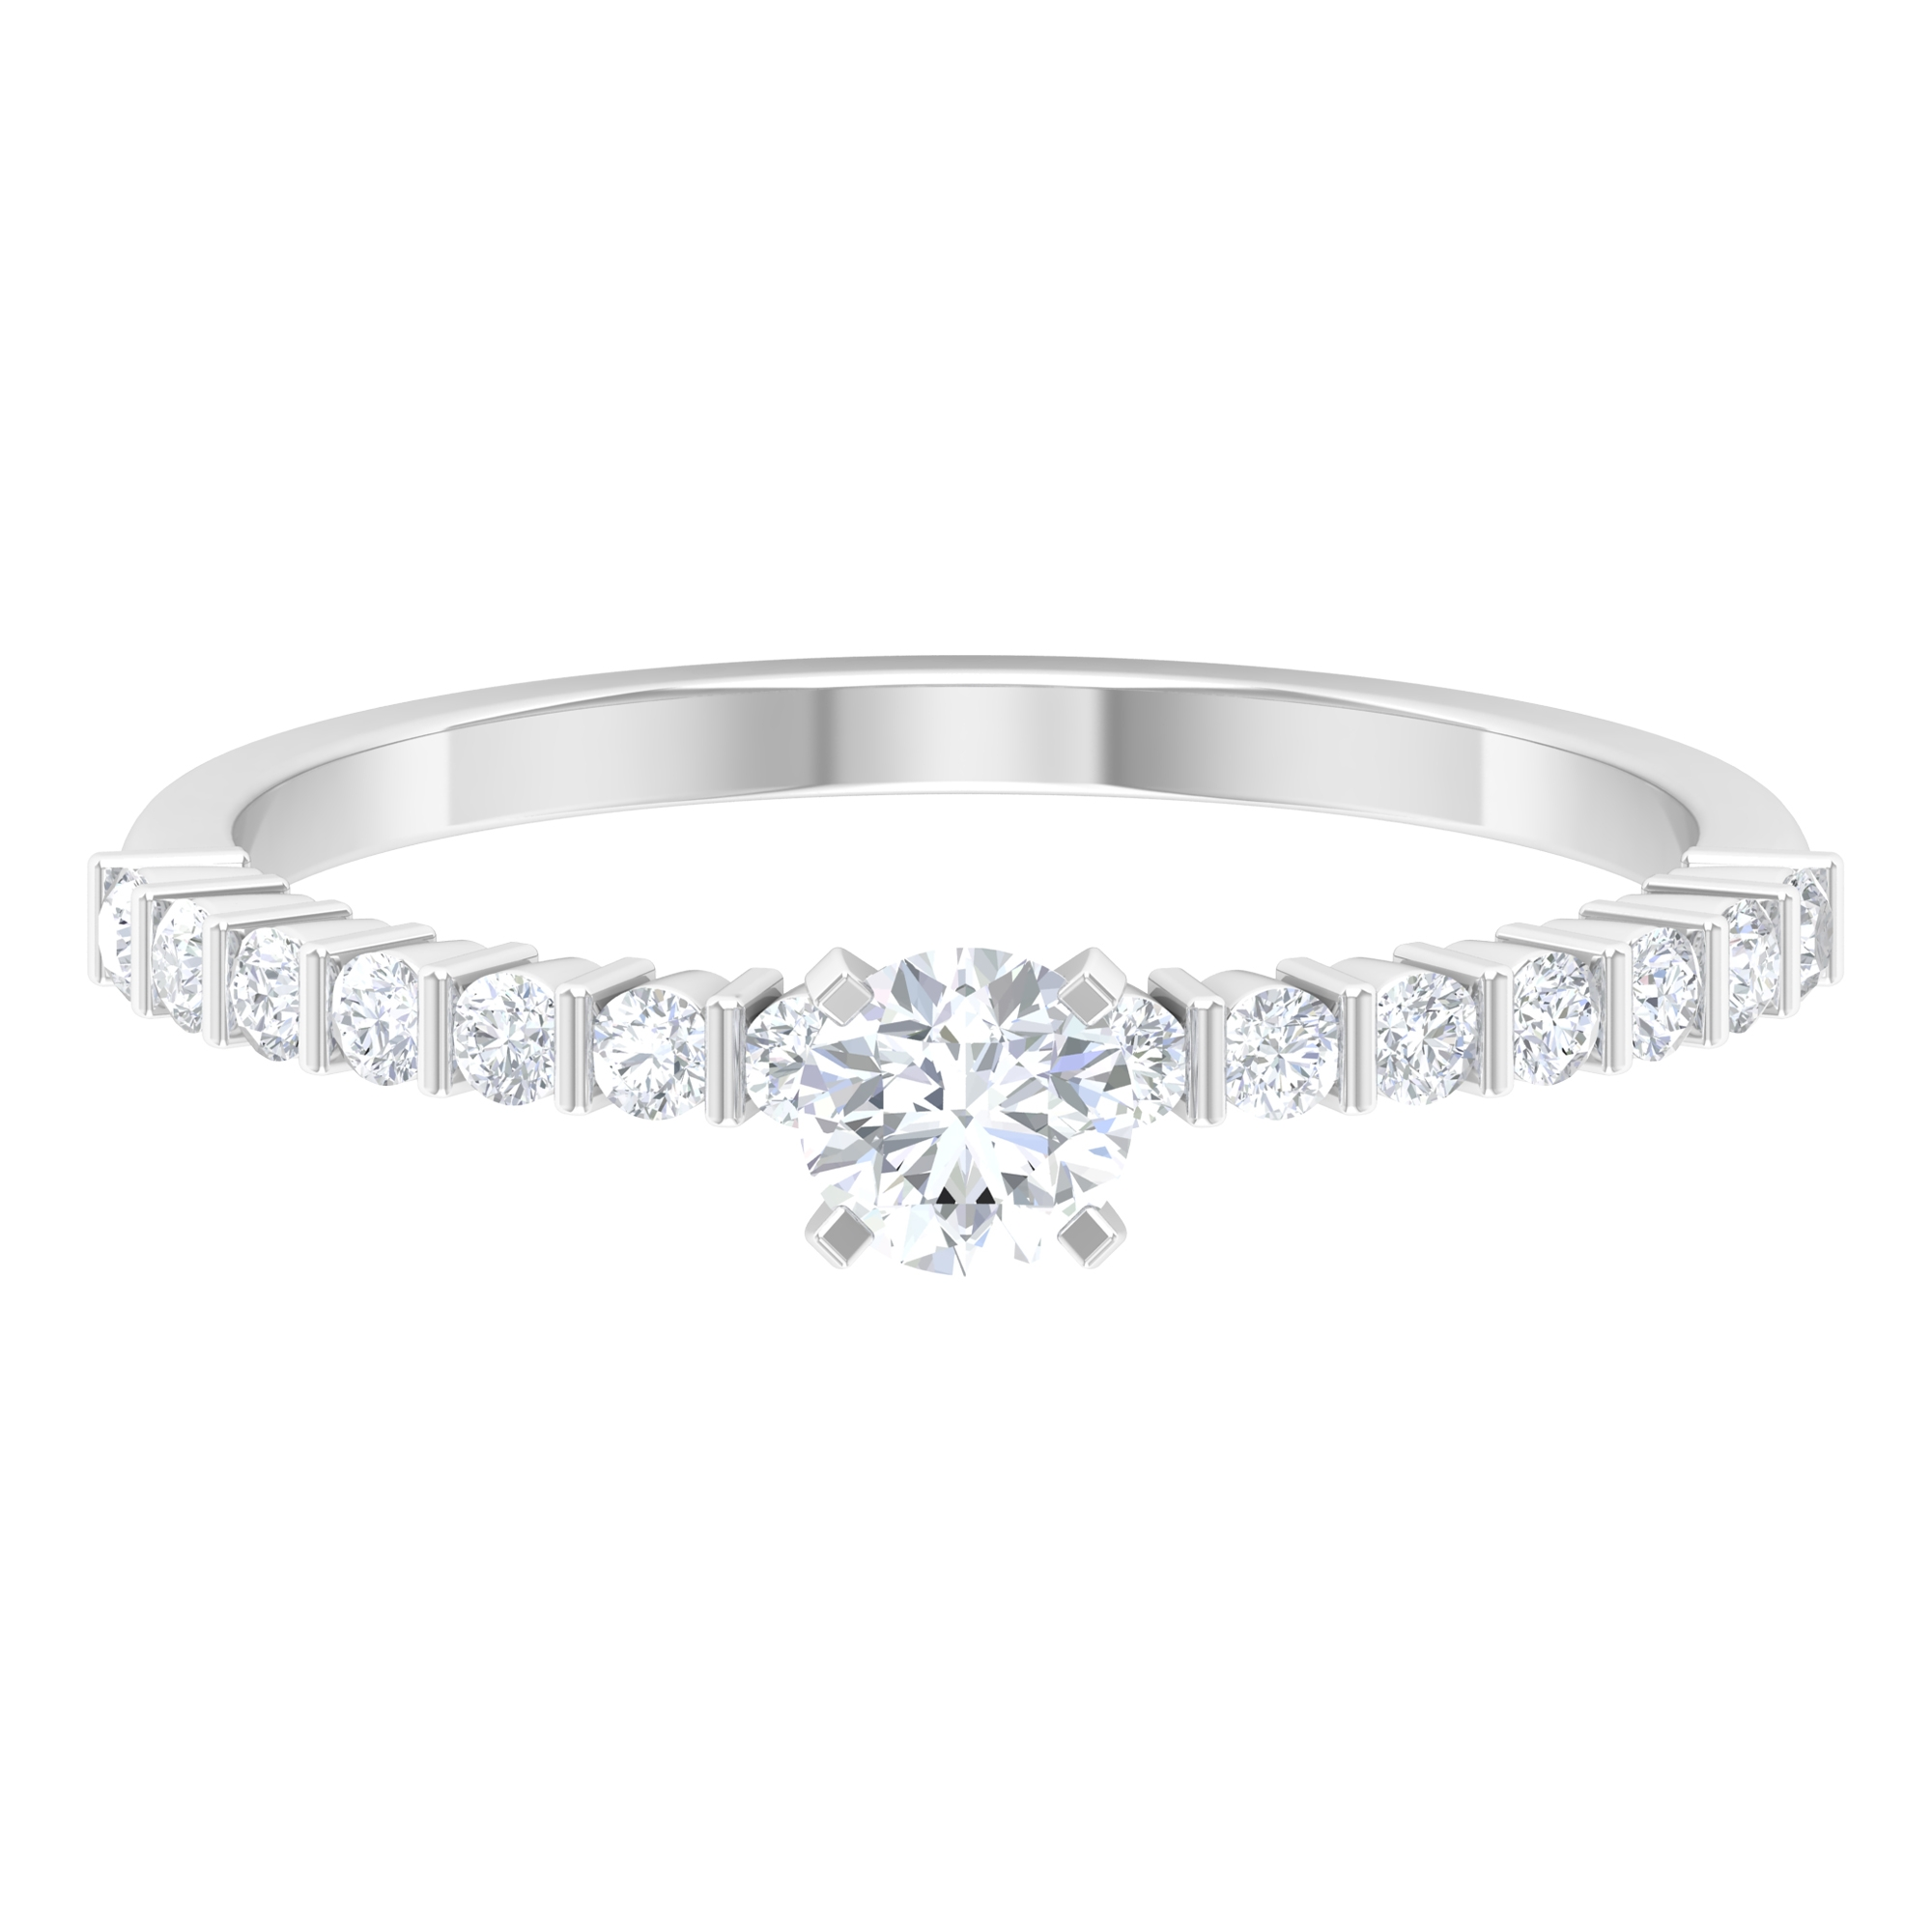 1/2 CT Square Prong Set Solitaire Diamond Ring with Bar Set Side Stones